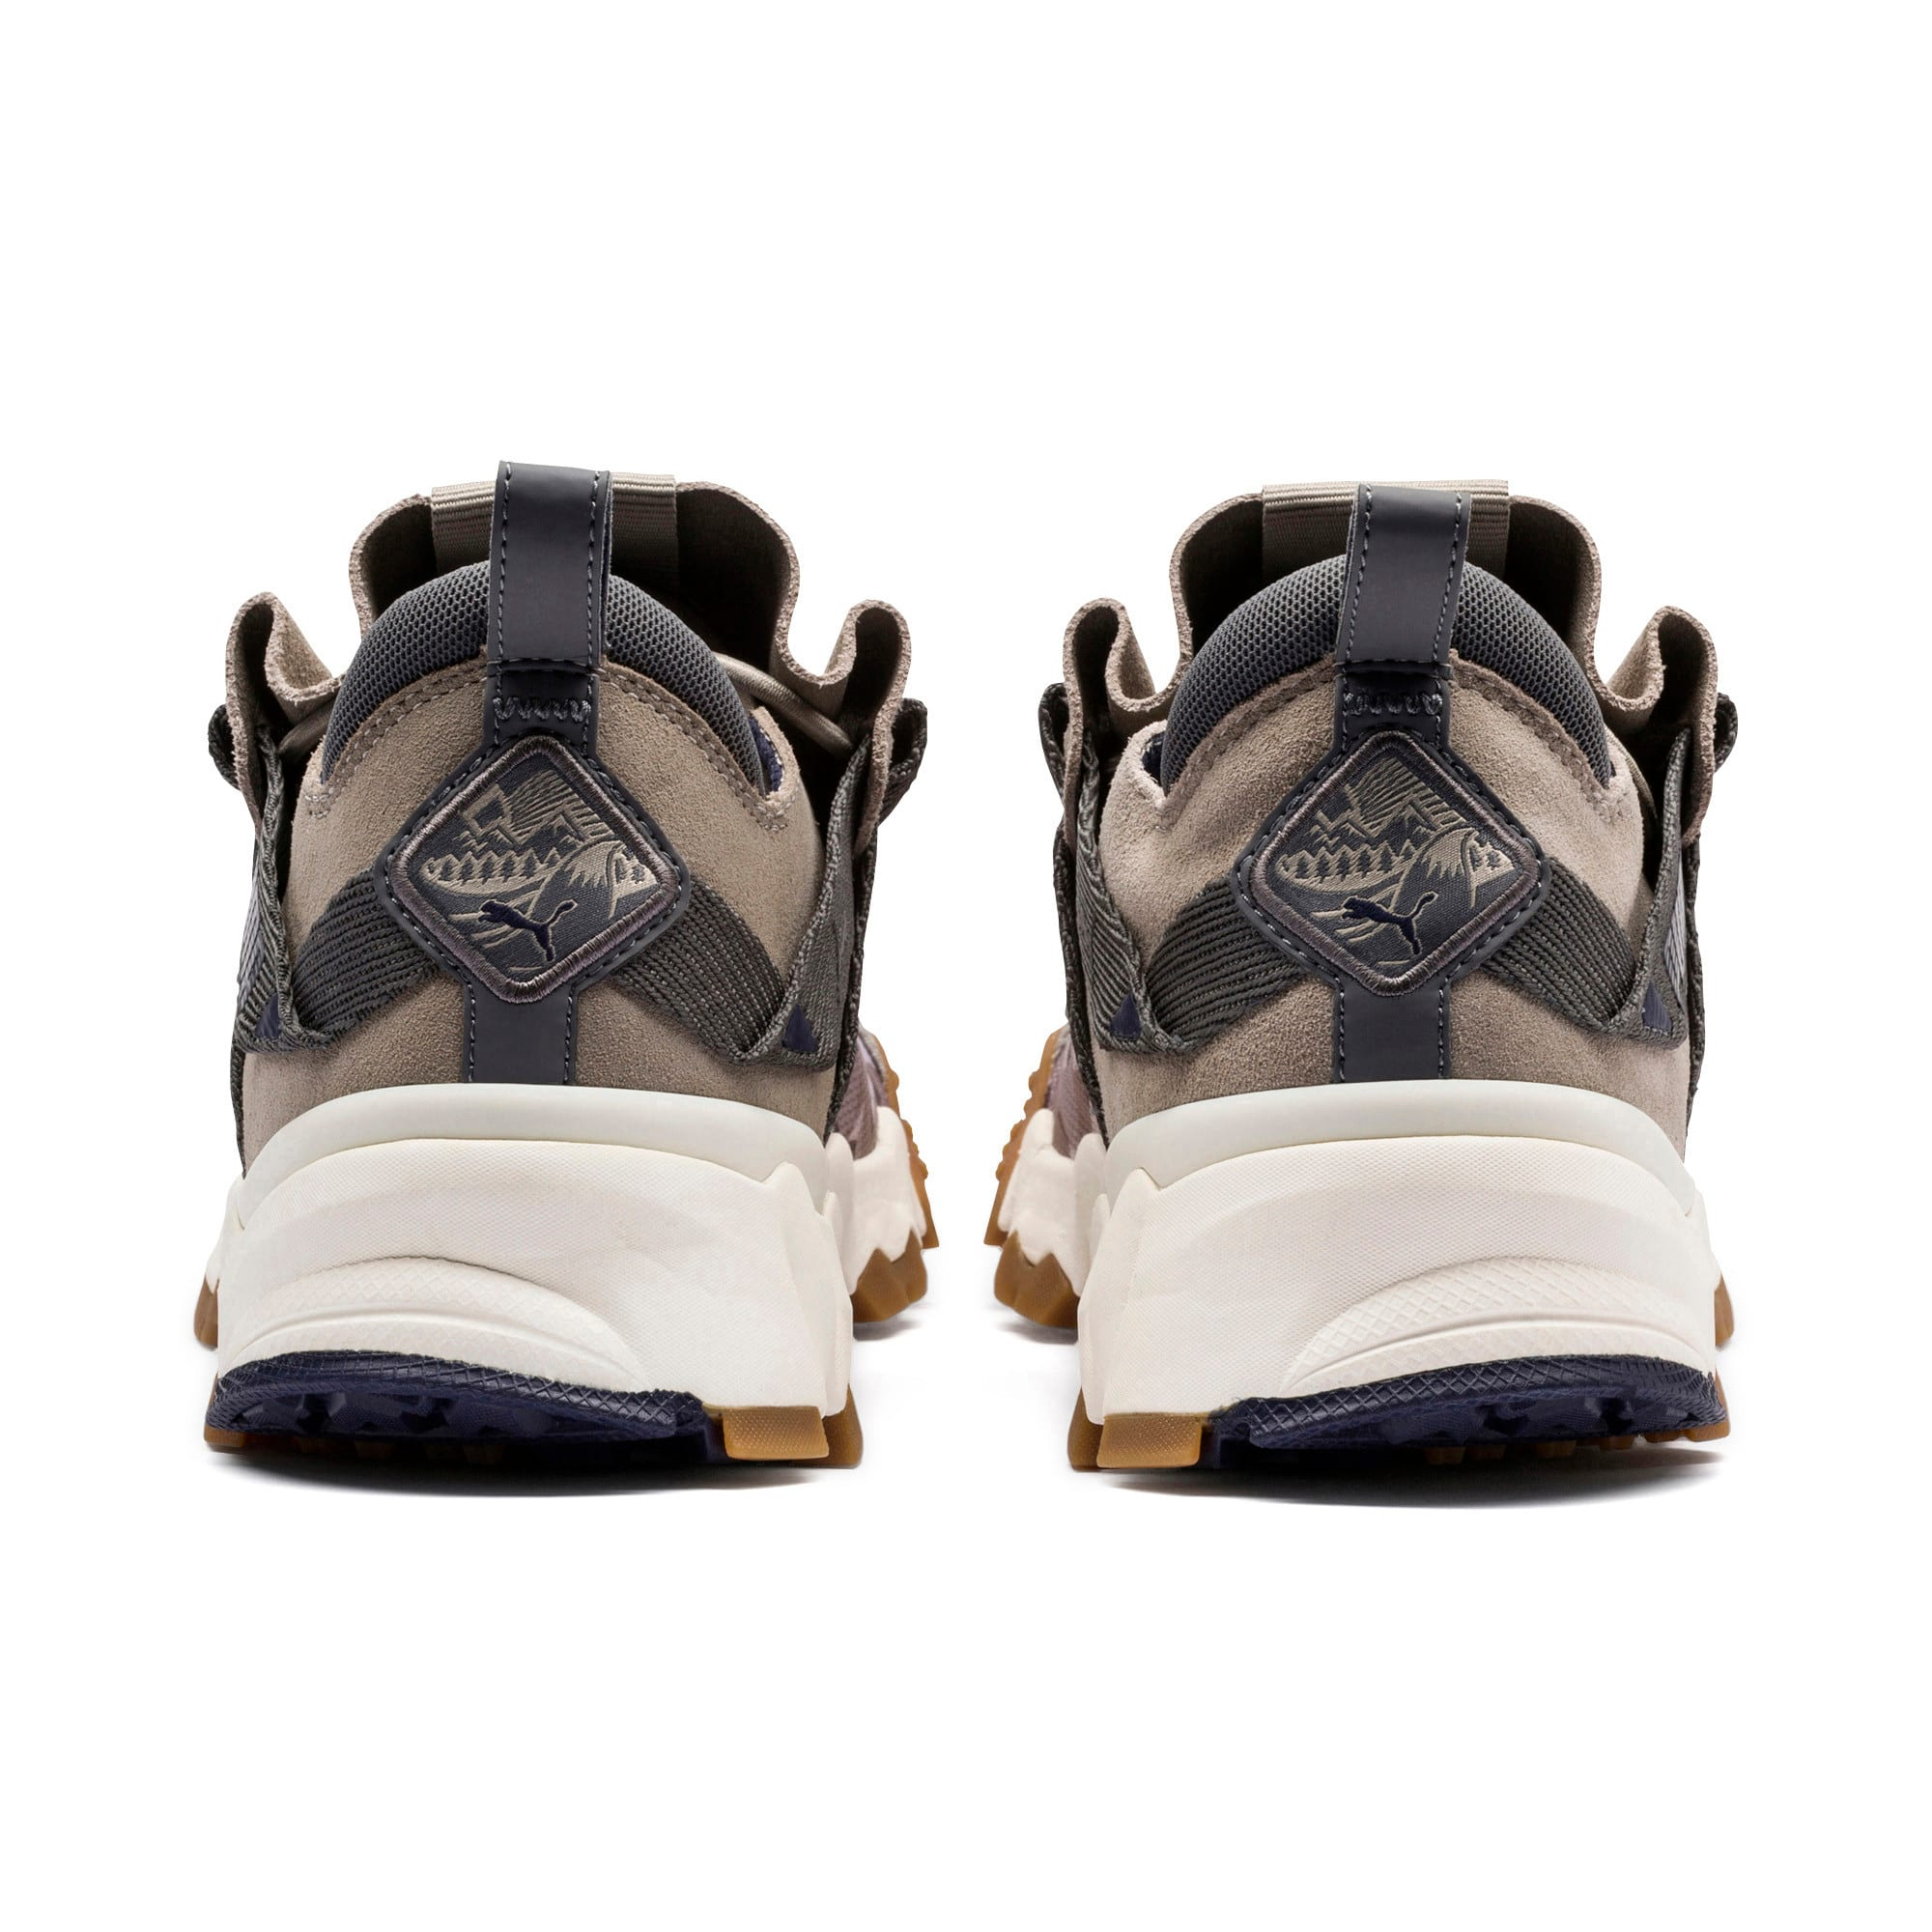 Thumbnail 3 of Trailfox Camo Trainers, Elephant Skin-Whisper White, medium-IND